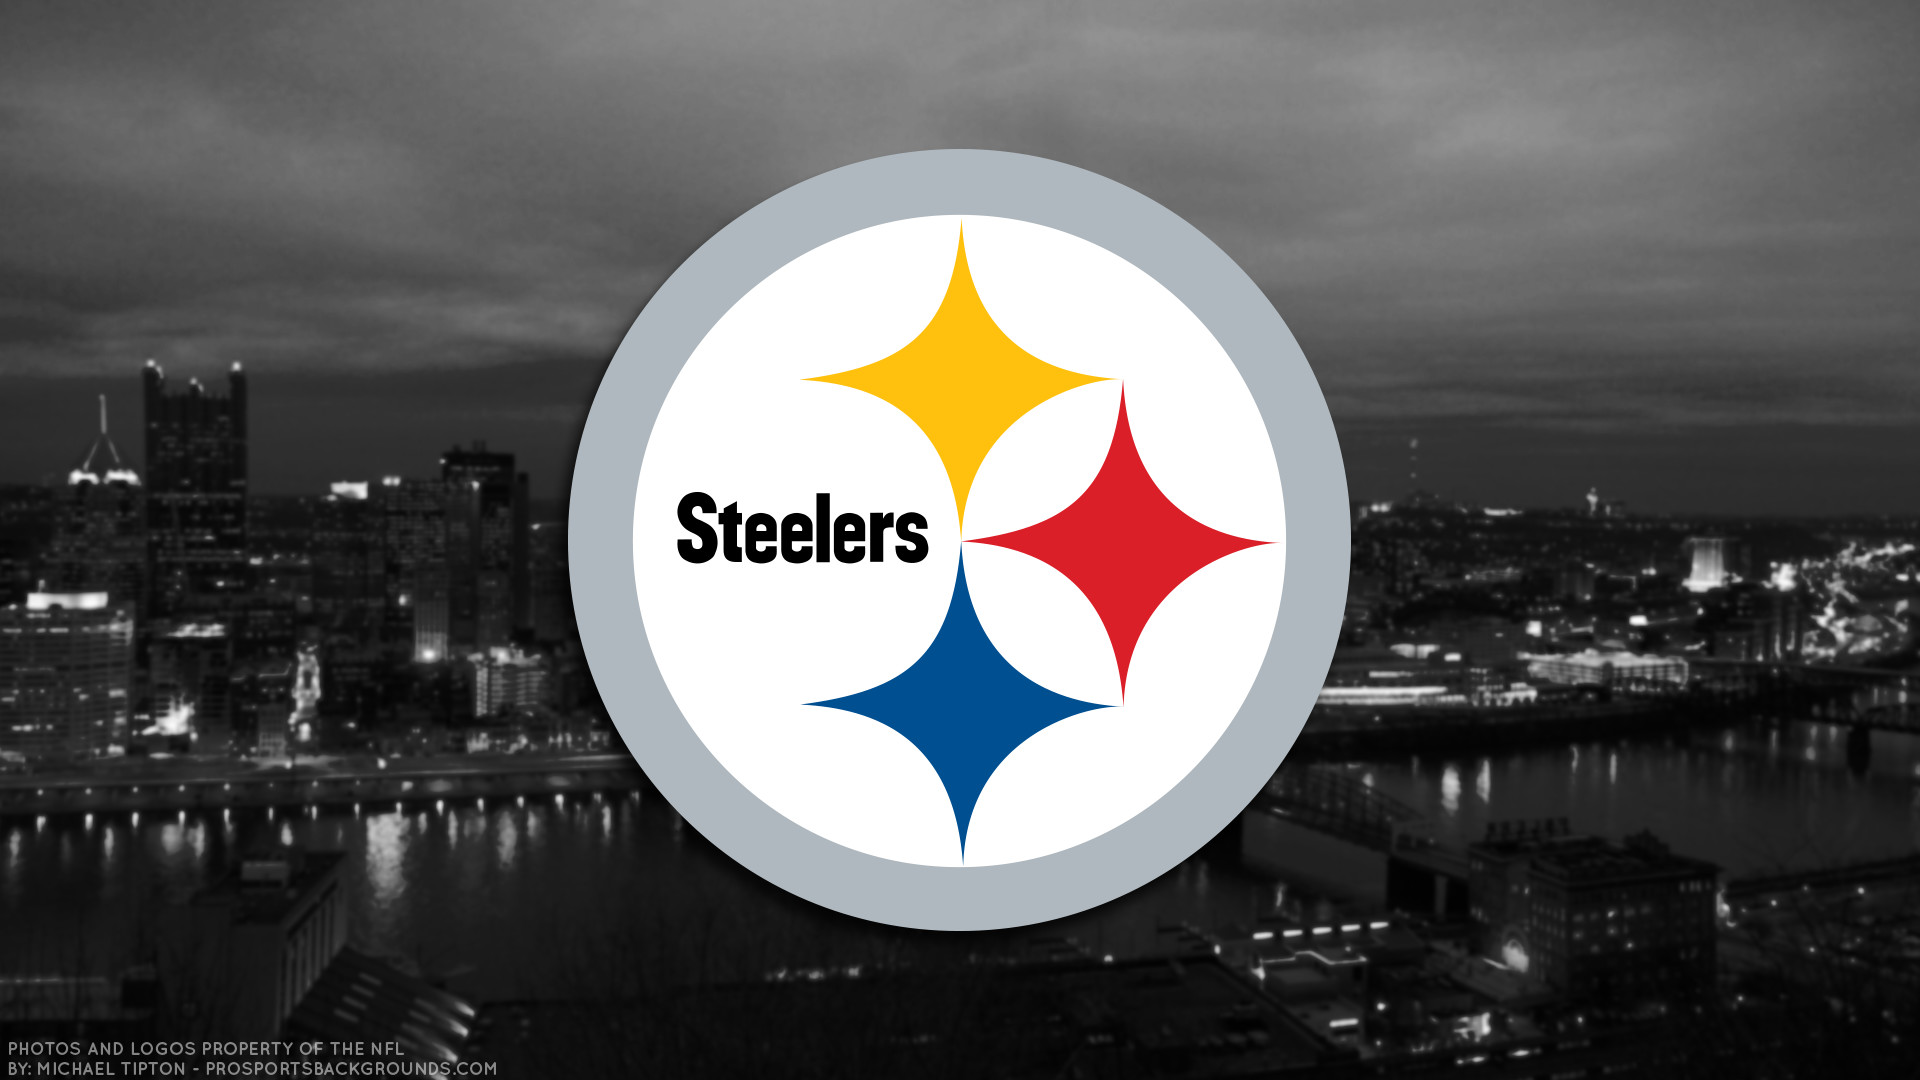 Pittsburgh steelers wallpaper ·① download free full hd.